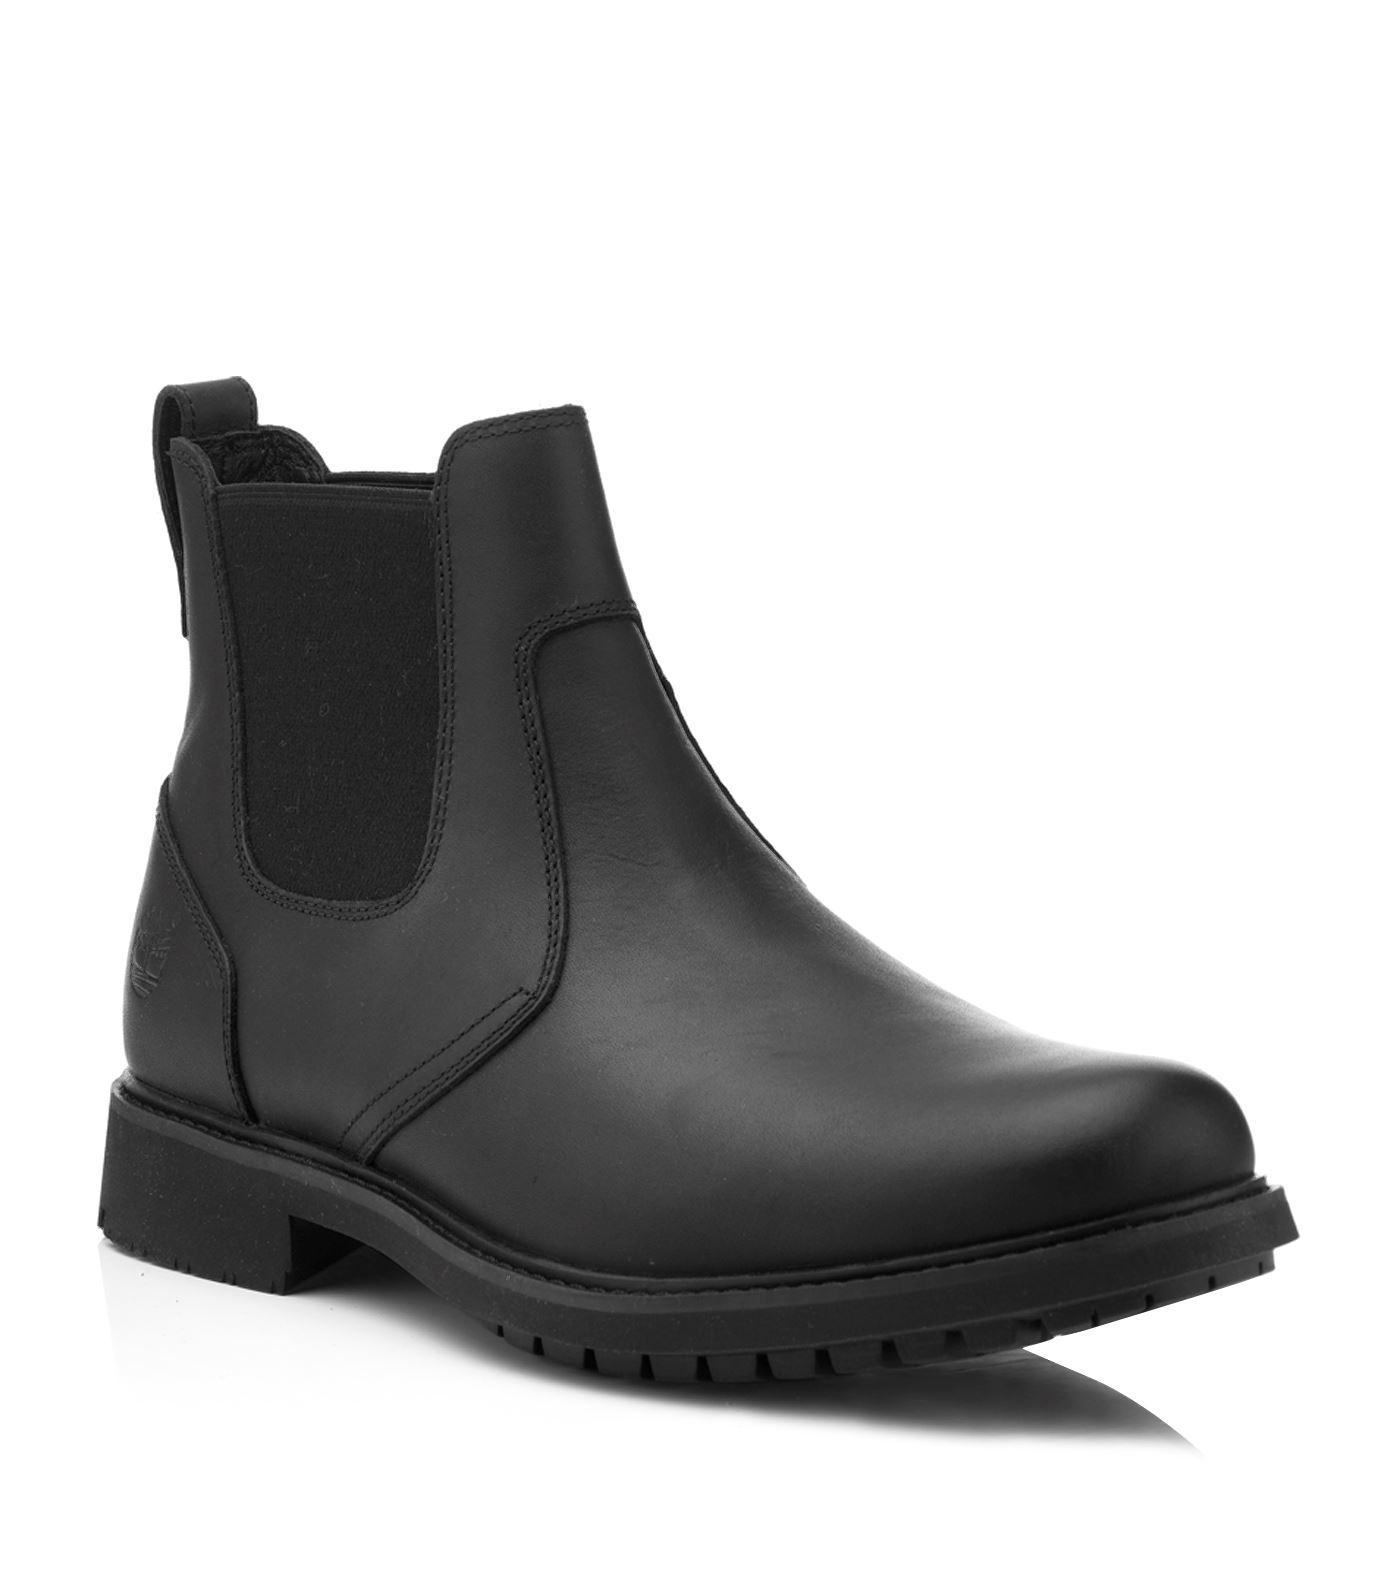 timberland earthkeepers stormbuck chelsea boots in black for men lyst. Black Bedroom Furniture Sets. Home Design Ideas